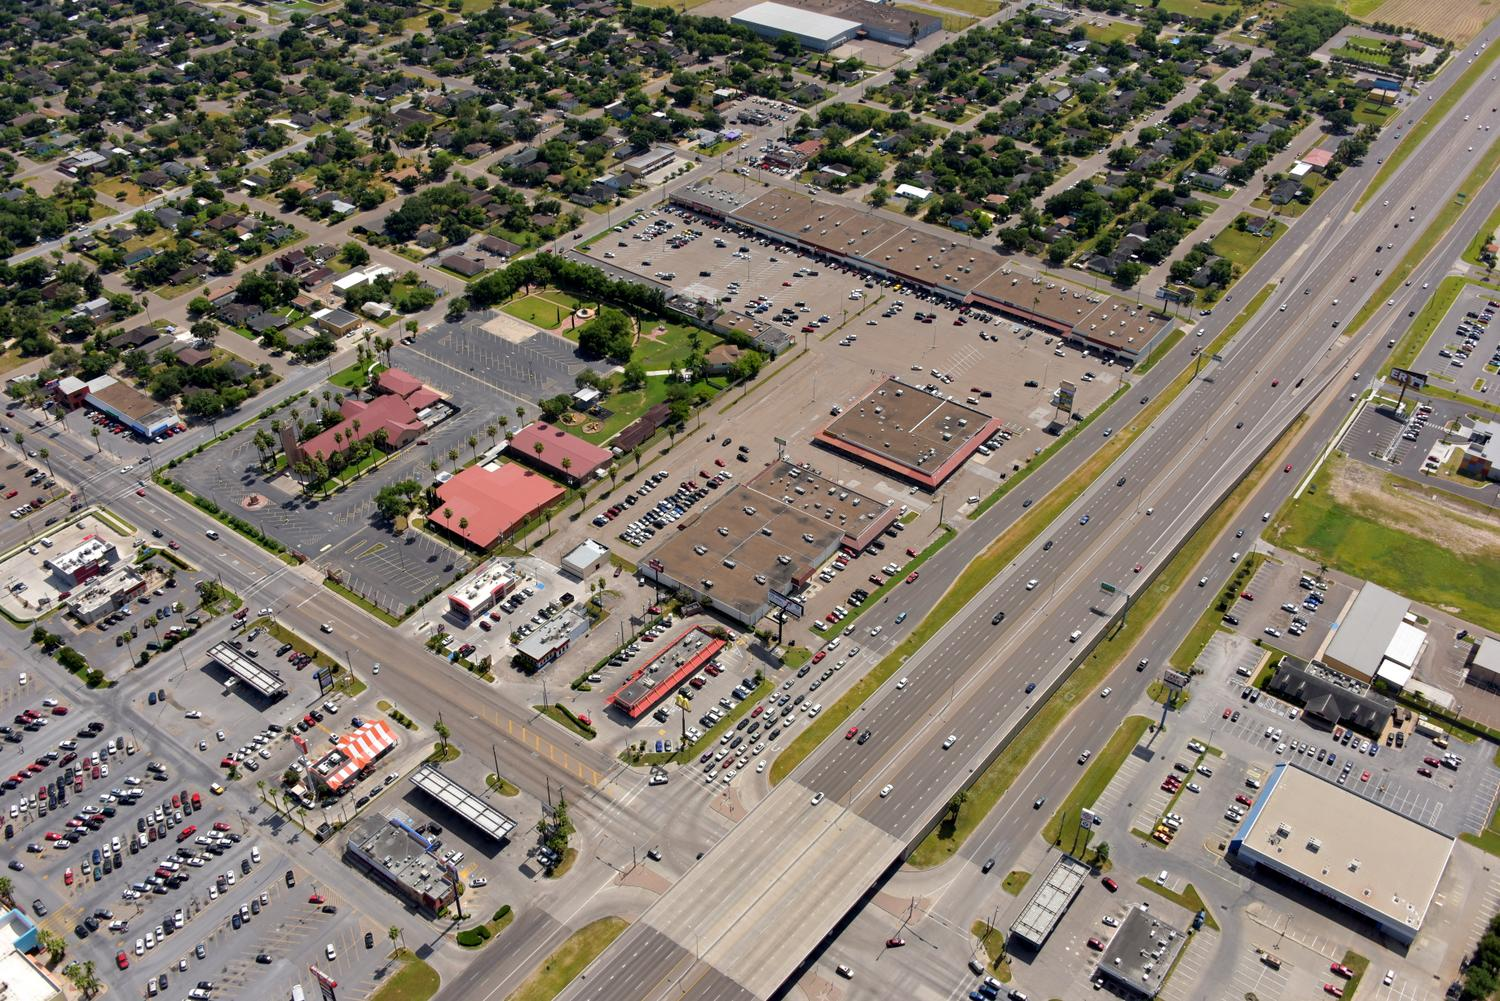 Palm Plaza, Weslaco, Texas - Weslaco Aerial Photographer - Aerial Drone Image - Aerial Drone Video - Weslaco, TX - Rio Grande Valley, Texas